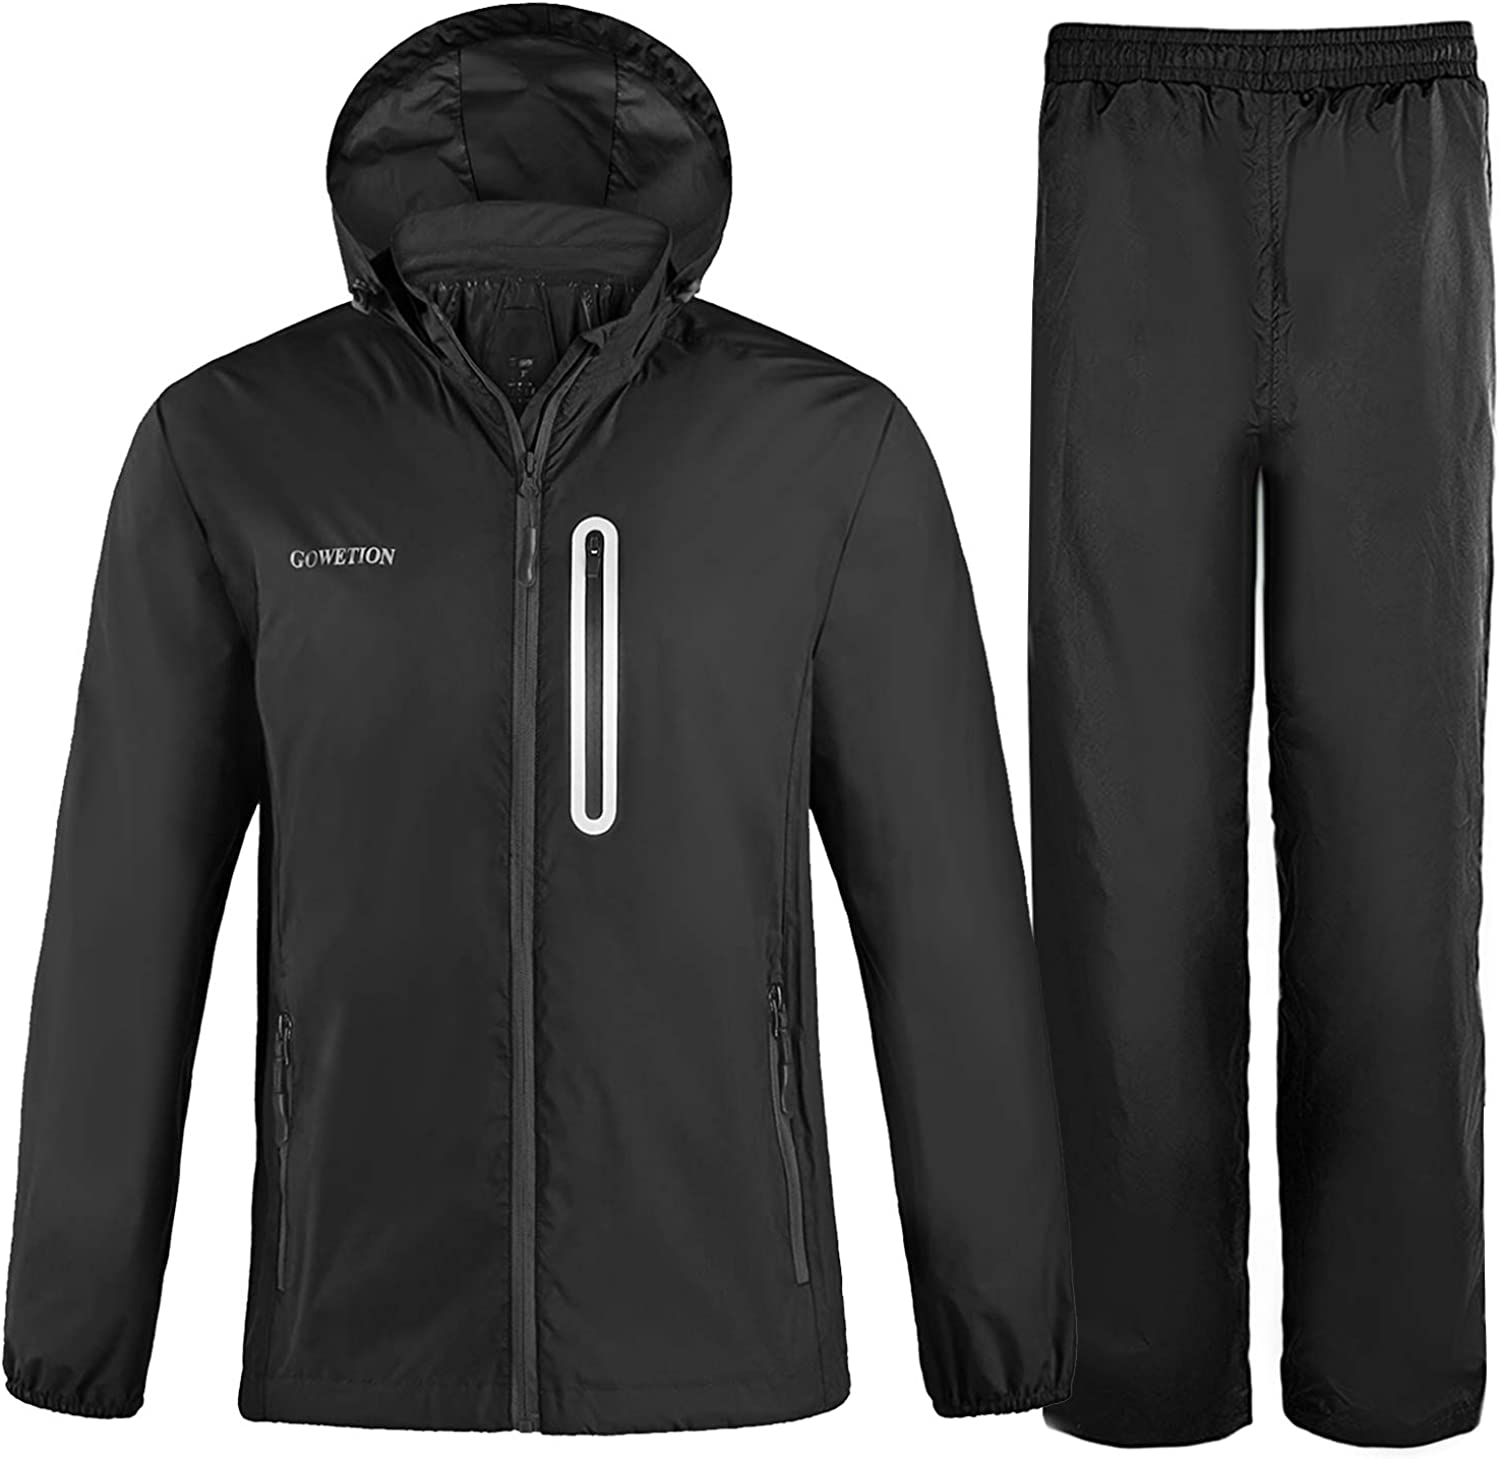 GOWETION Men's Light Rain Gear Jacket Free shipping Recommendation New Suits Golf